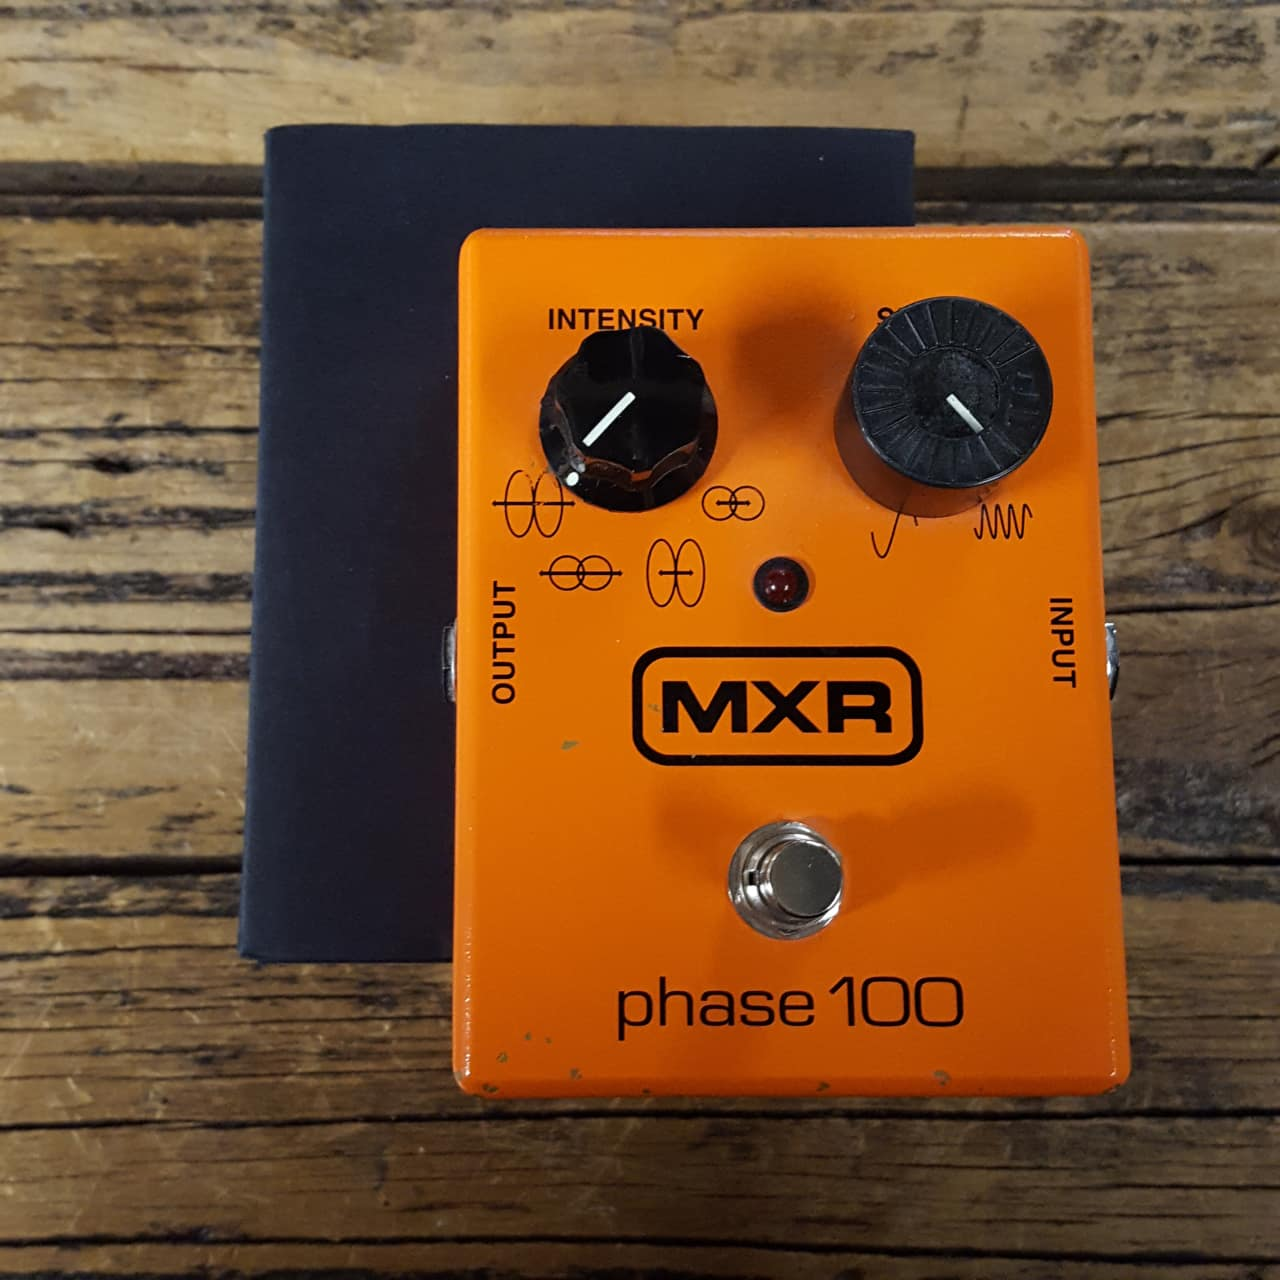 from Marvin dating mxr phase 100